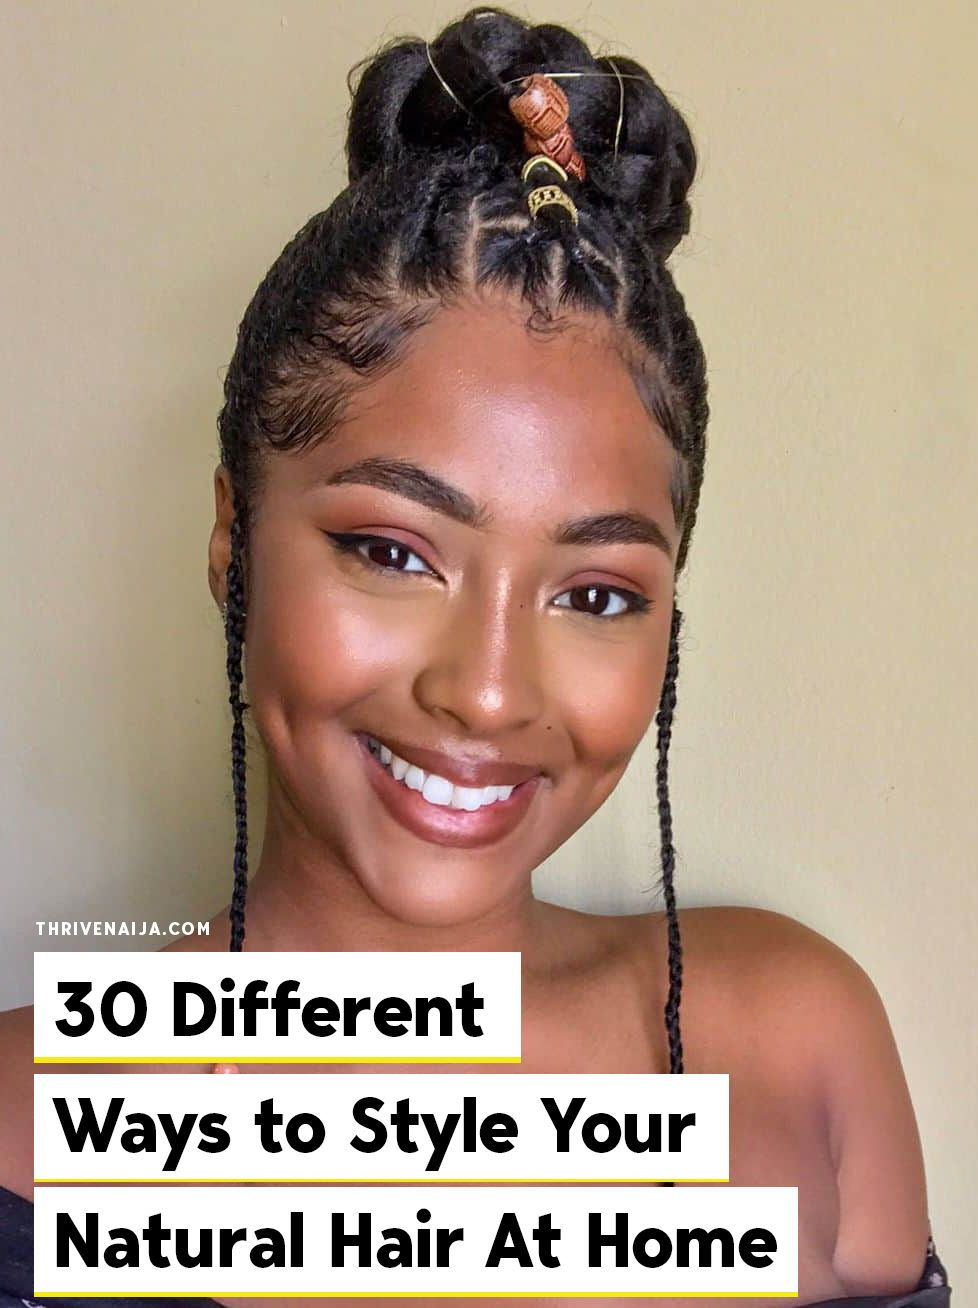 40 Different Ways To Style Your Natural Hair At Home Thrivenaija Natural Hair Styles Natural Hair Care Tips Natural Hair Tips